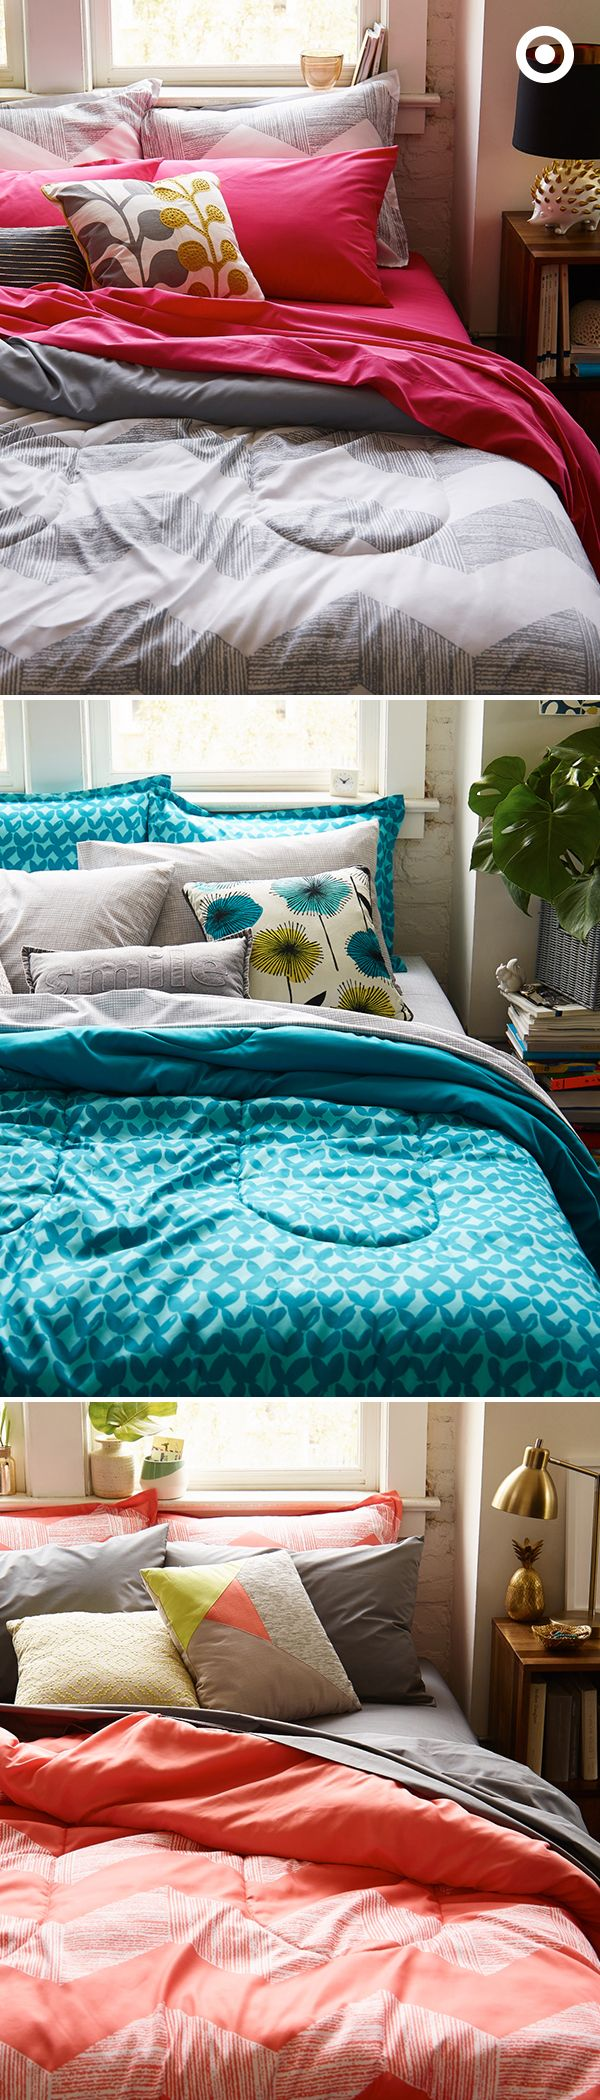 Bright bedding is just the thing to energize your bedroom. If you're new to the whole mix and match thing, limit your palette to no more than three colors and one neutral. But feel free to play with pattern, just keep it in a similar color palette.